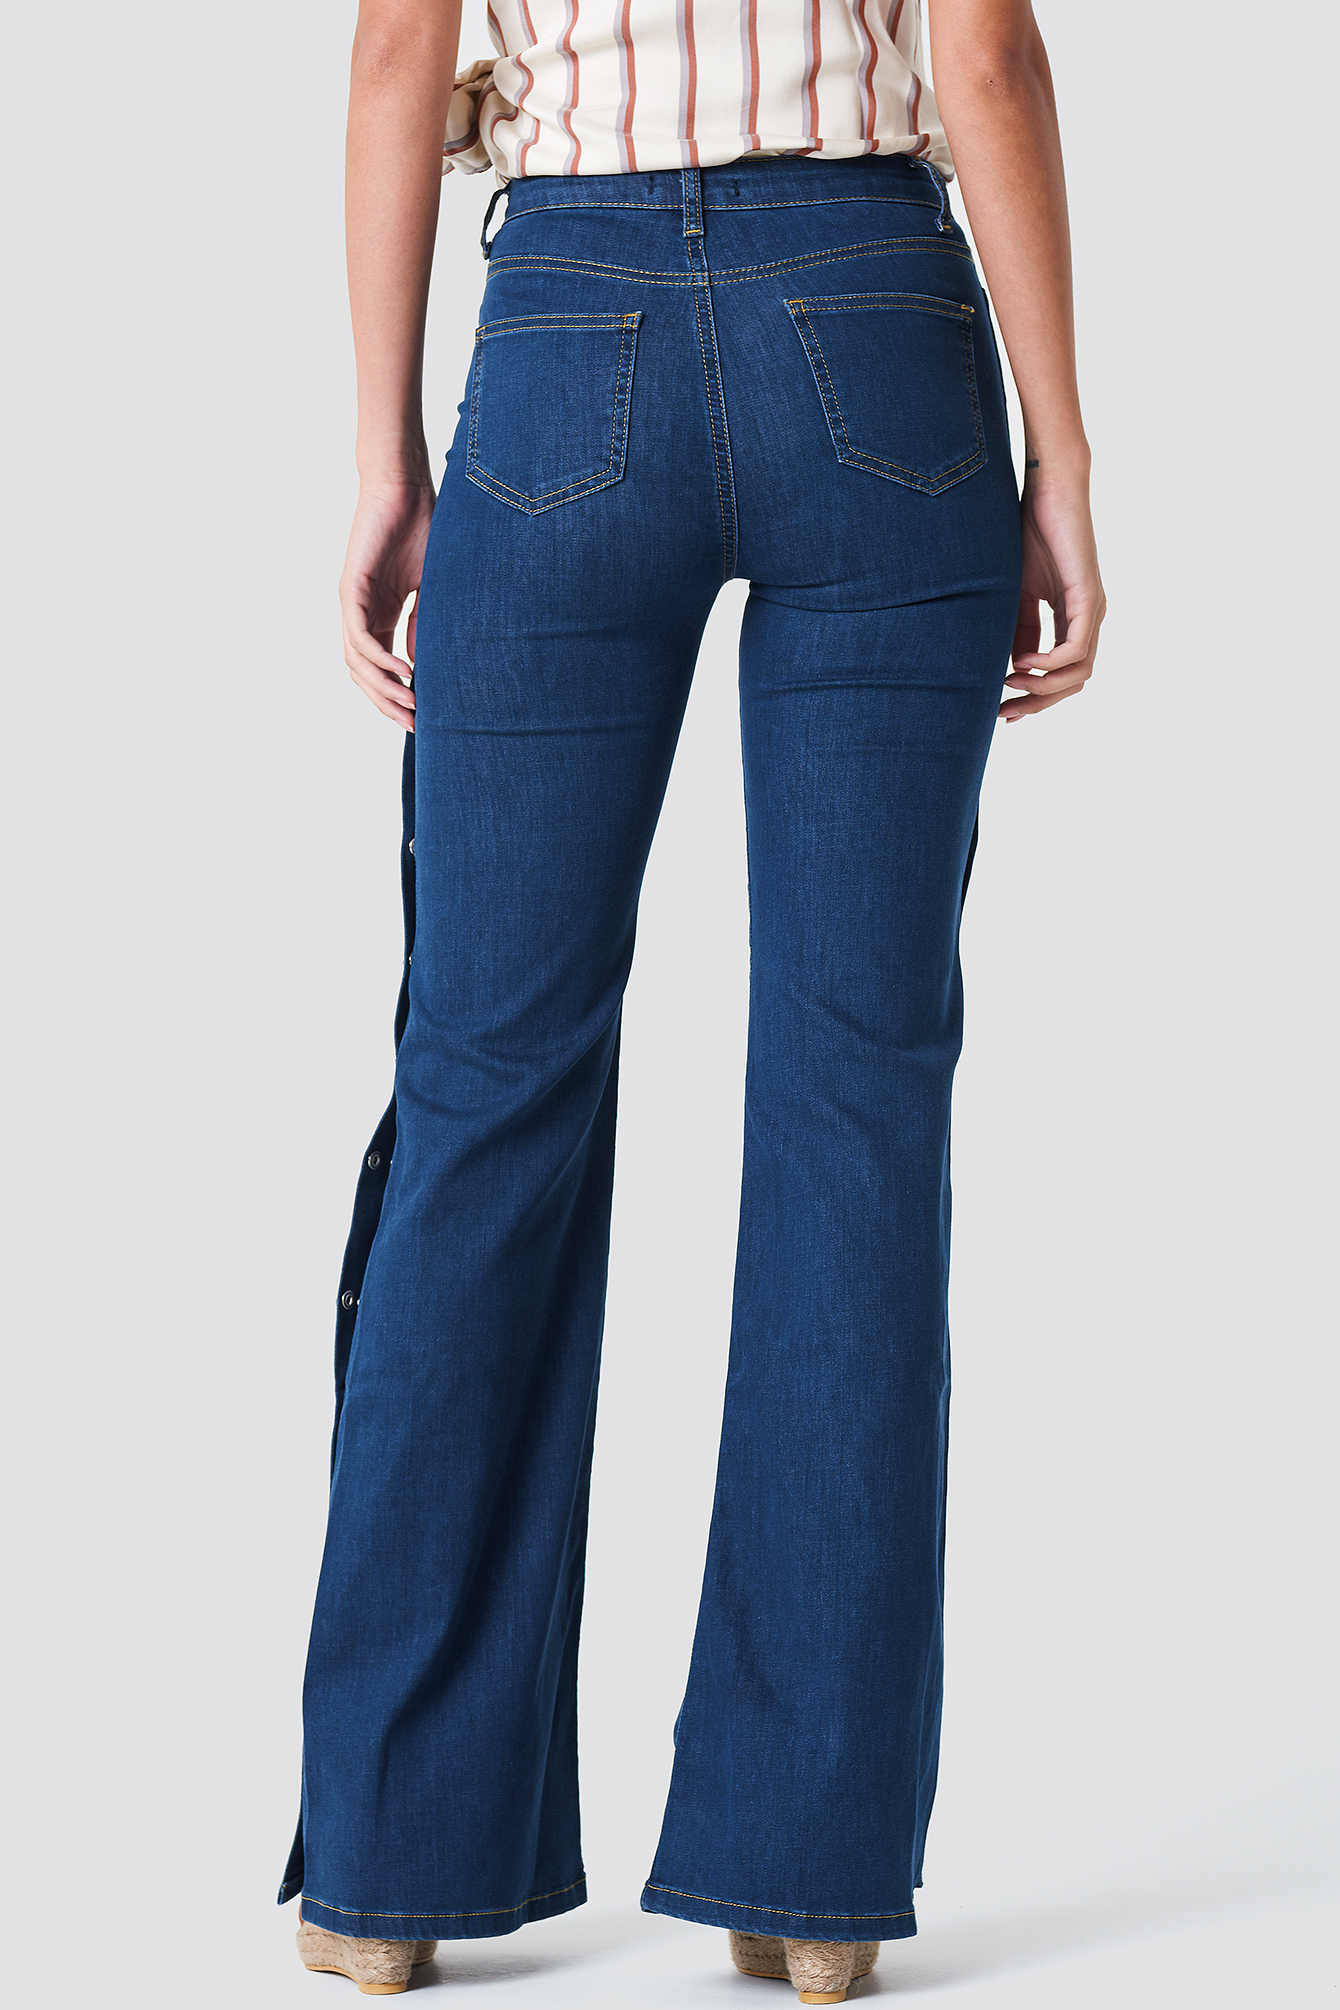 Blue High Flared Jeans